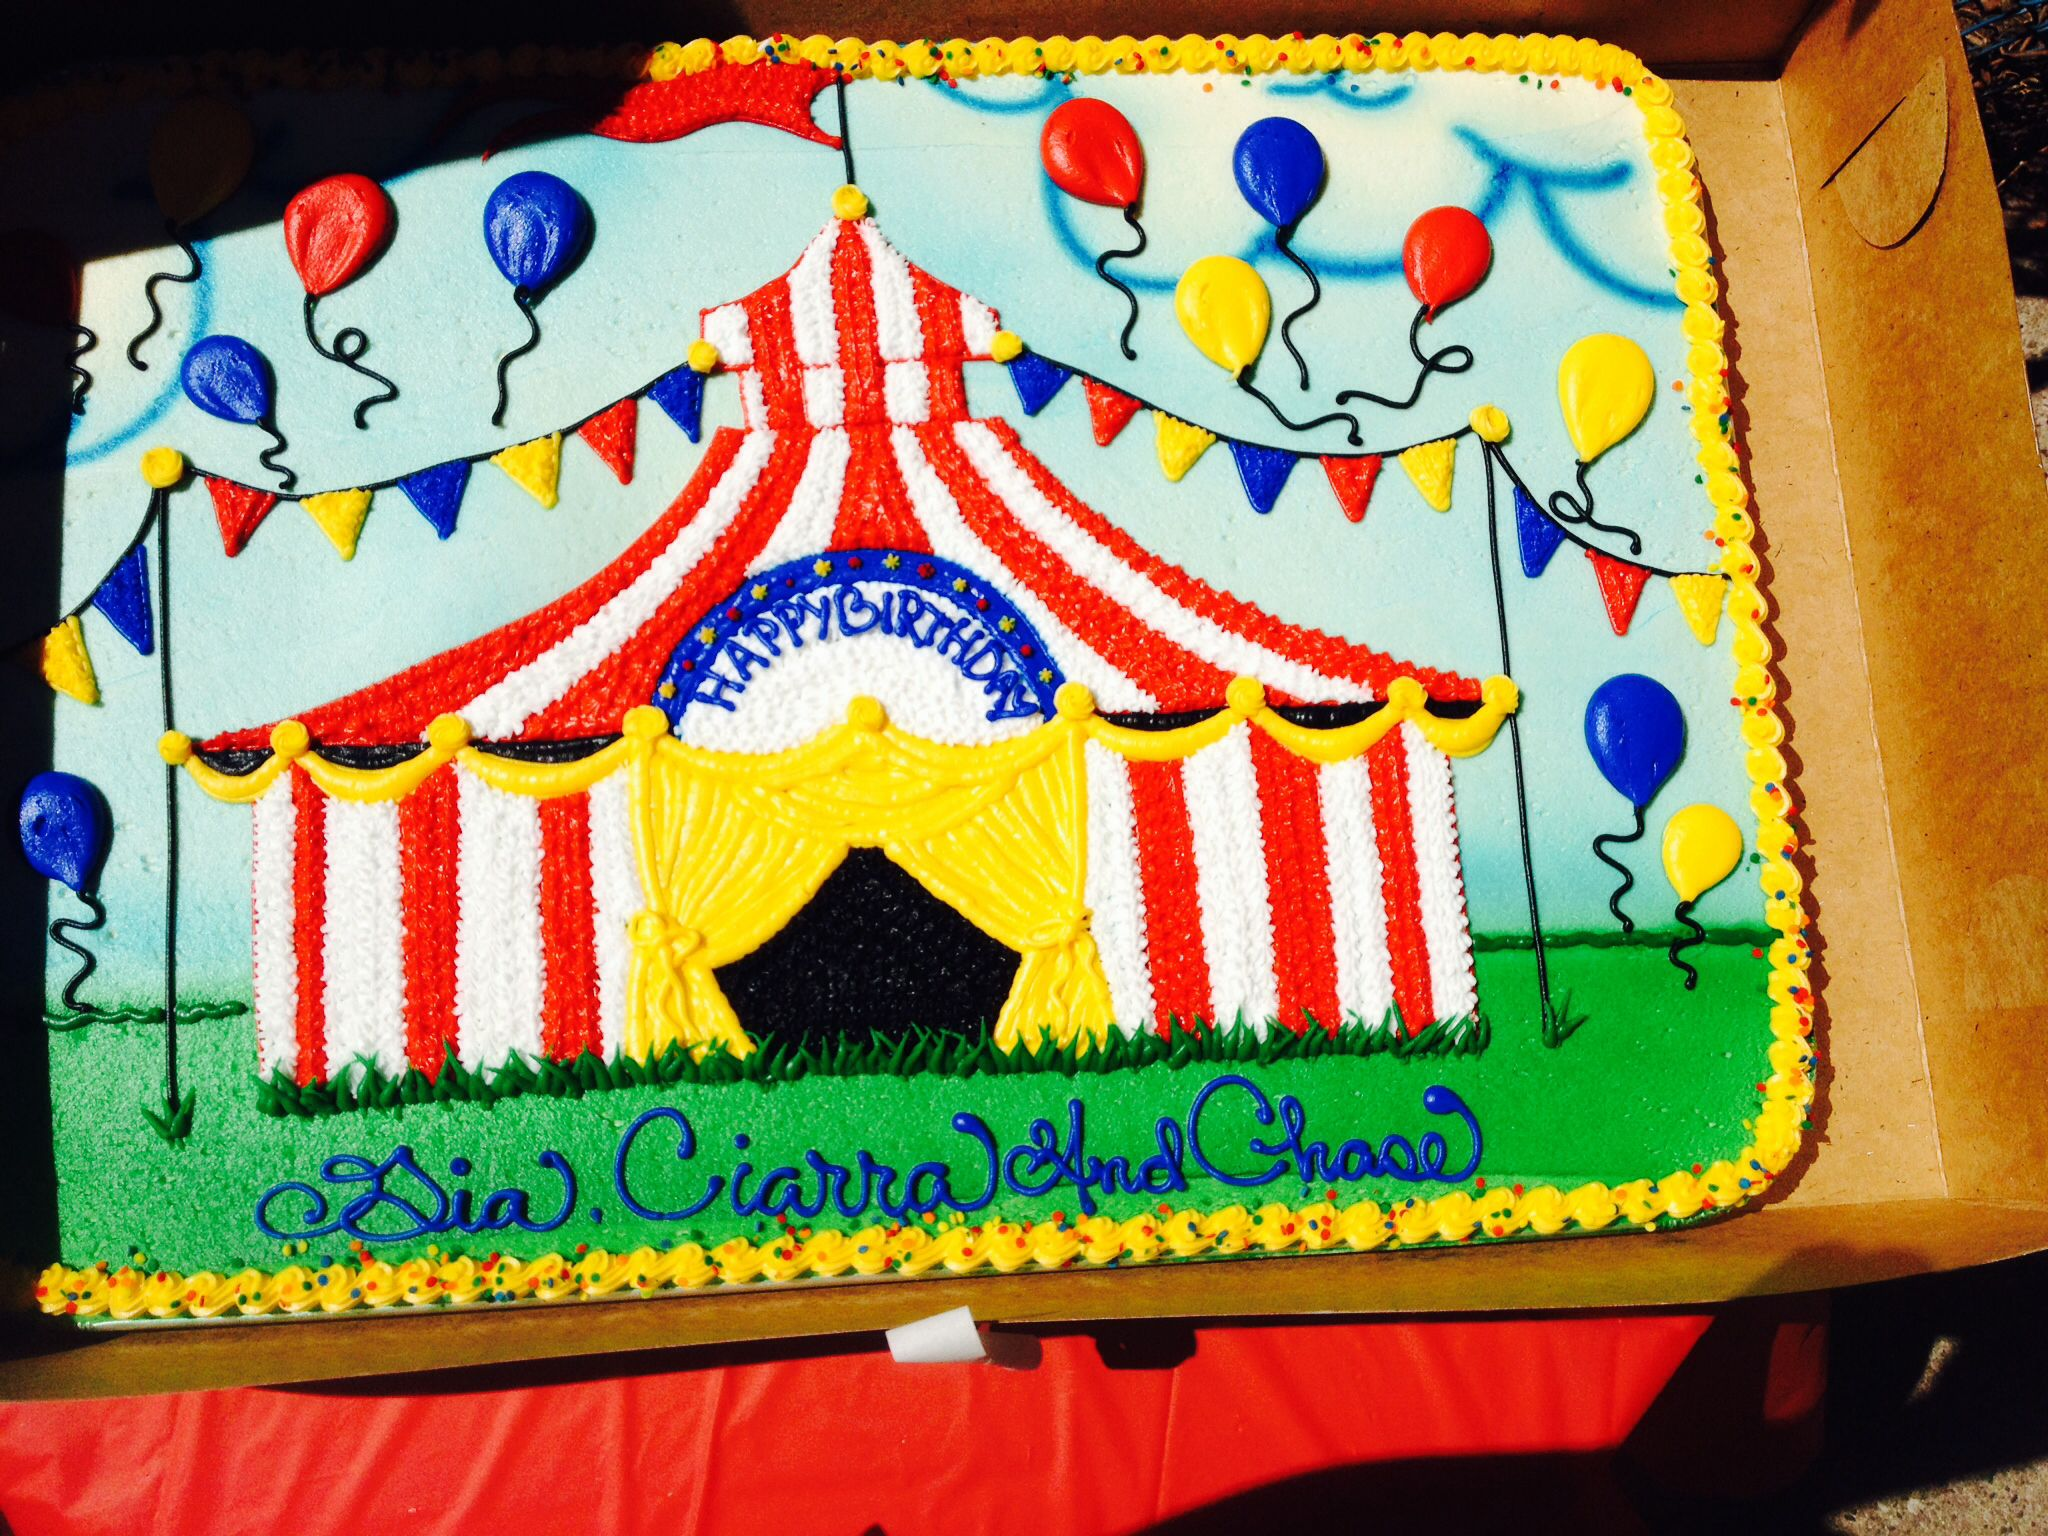 Carnival themebig top sheet cake design Brooke Pinterest